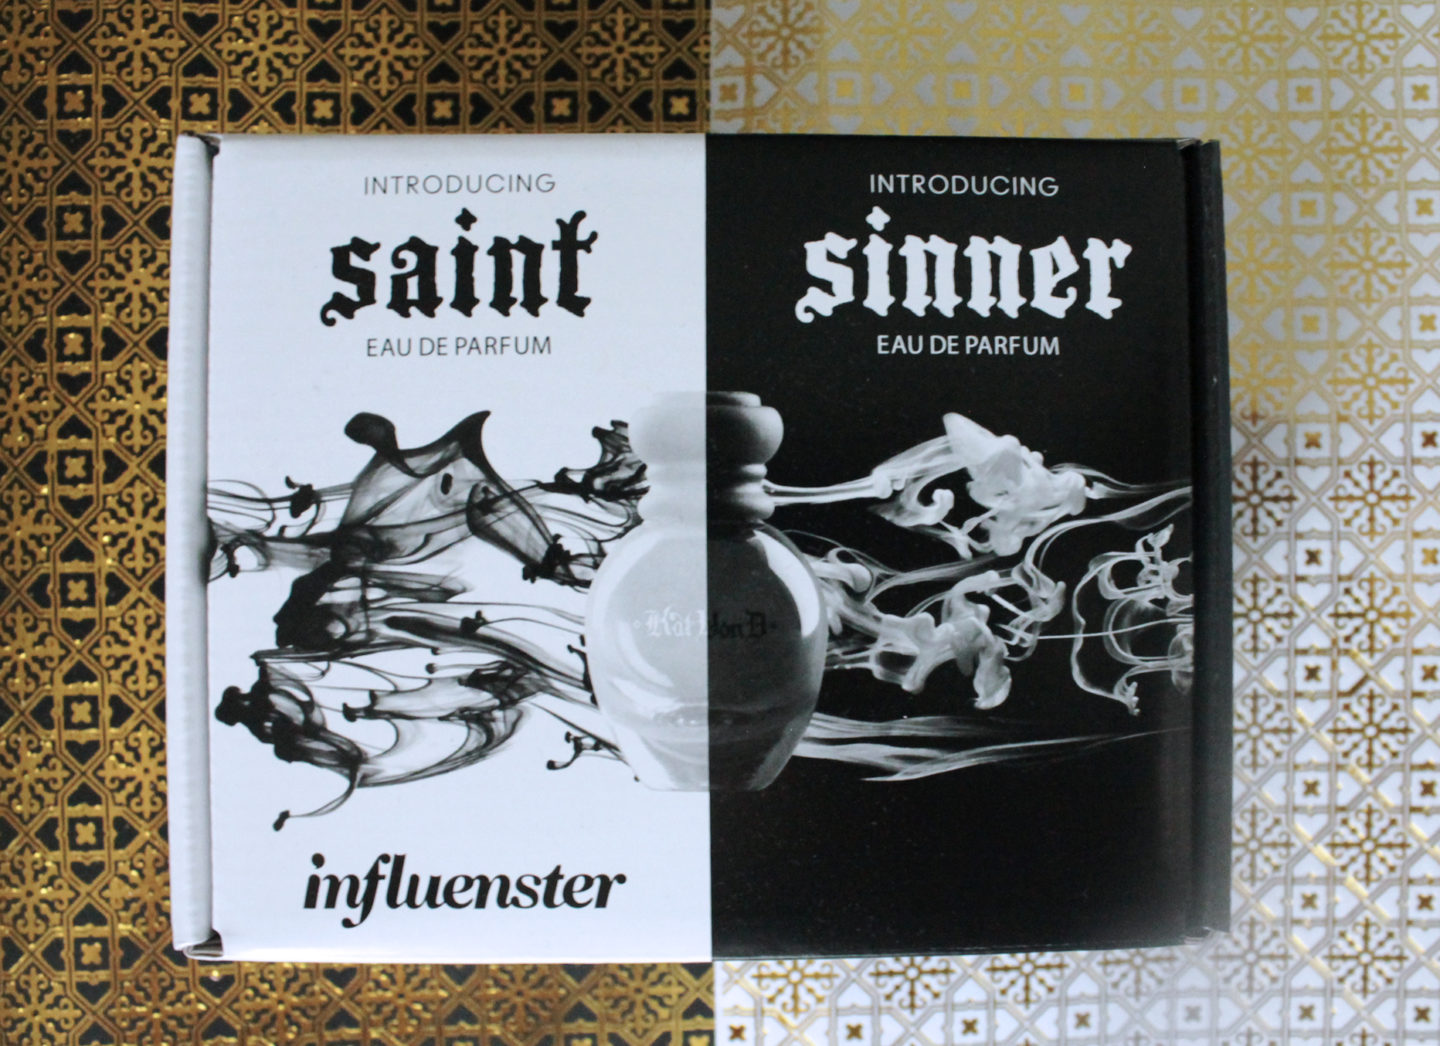 Saint and Sinner Influenster Box